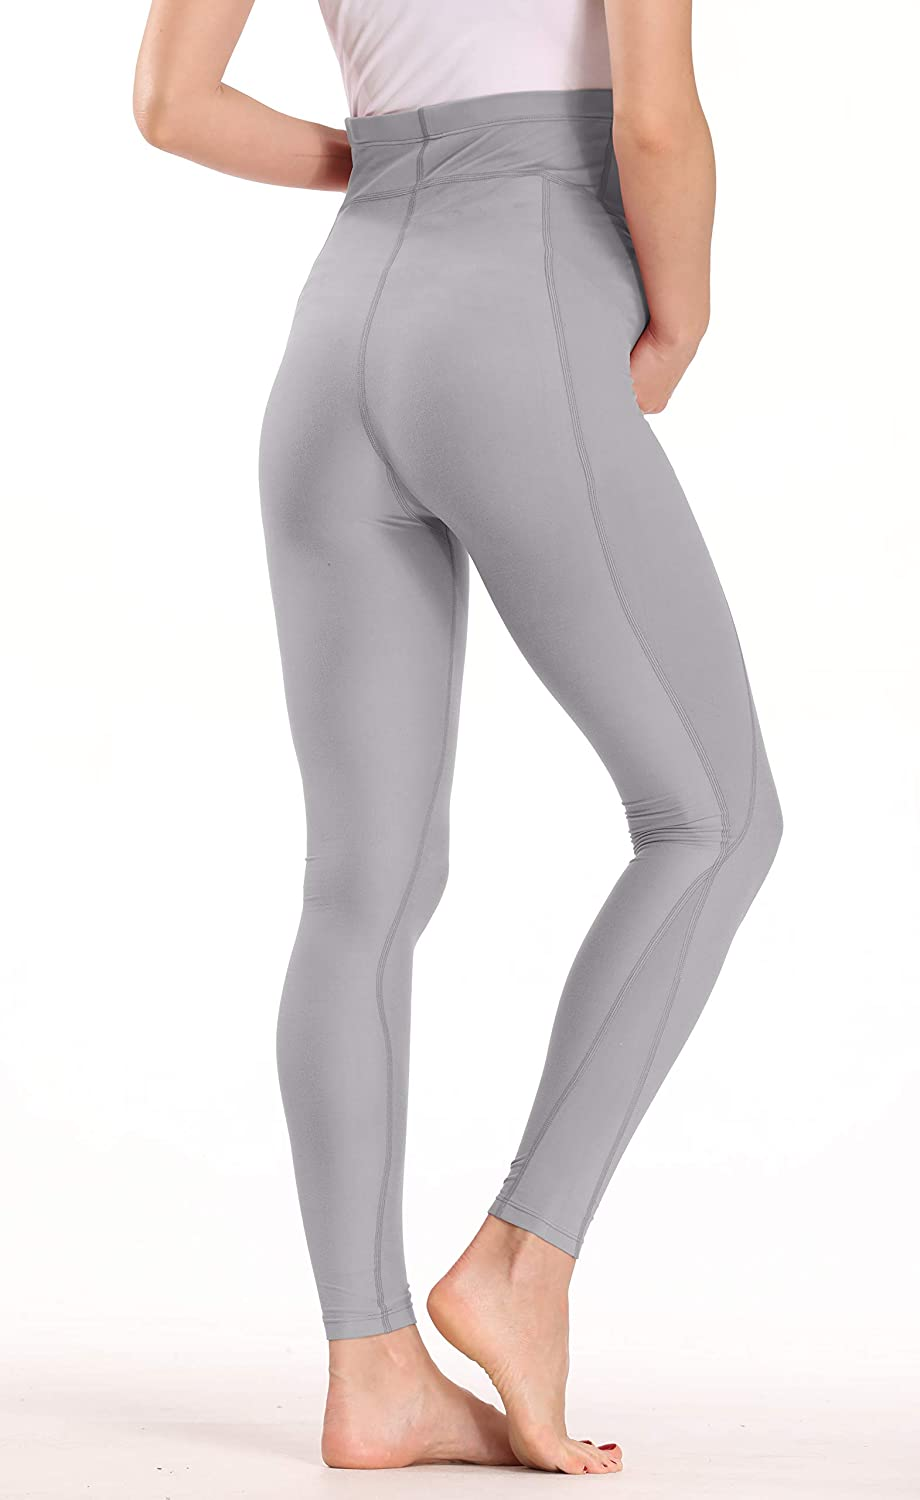 V VOCNI Over Bump Support Maternity Leggings with Pockets Non See-Through Workout Running Yoga Pants